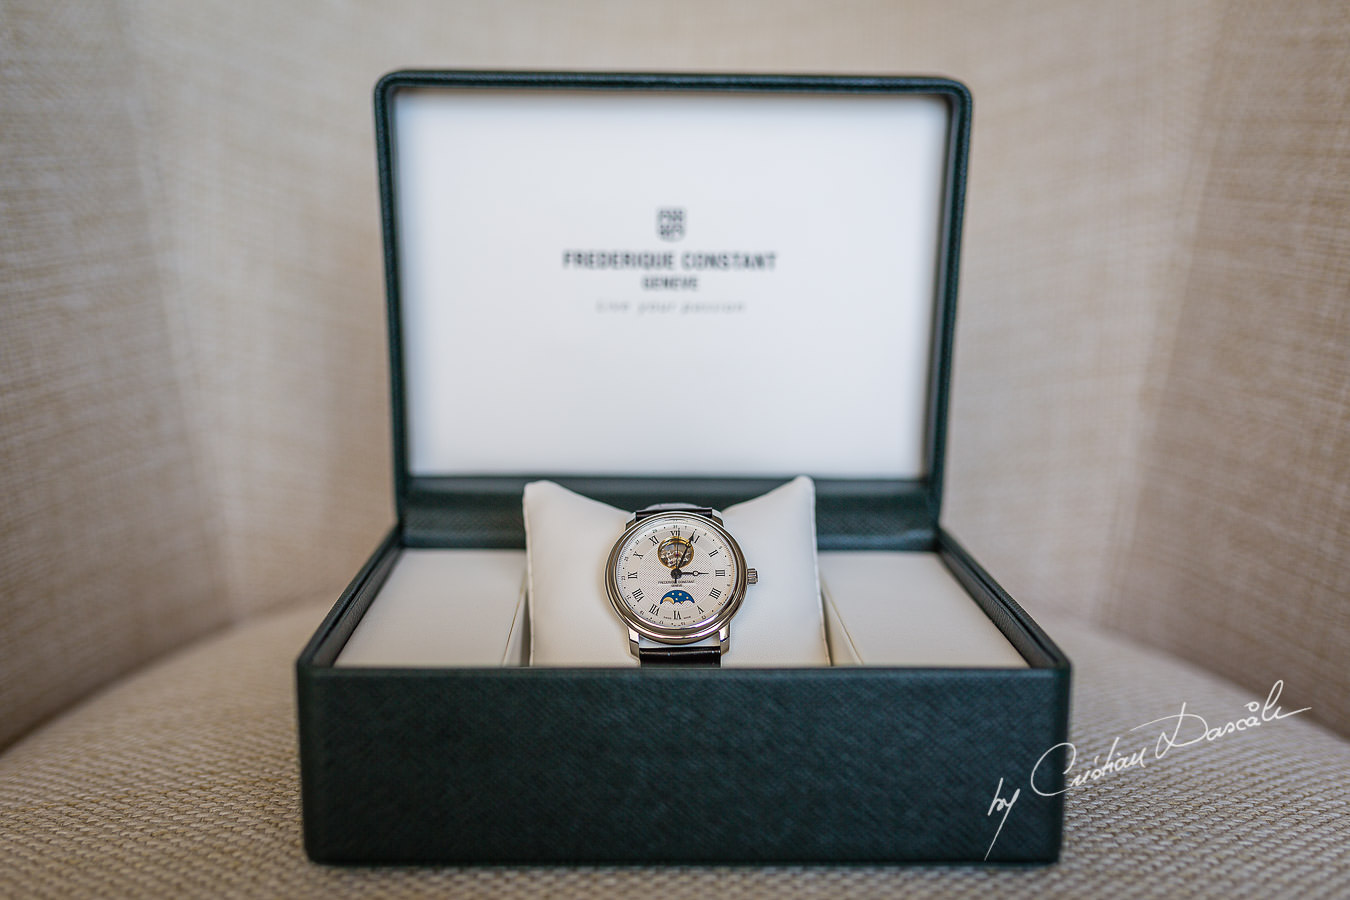 Groom's watch Frederique Constant photographed by Cristian Dascalu at Athena Beach Hotel in Paphos, Cyprus, during a symbolic wedding.